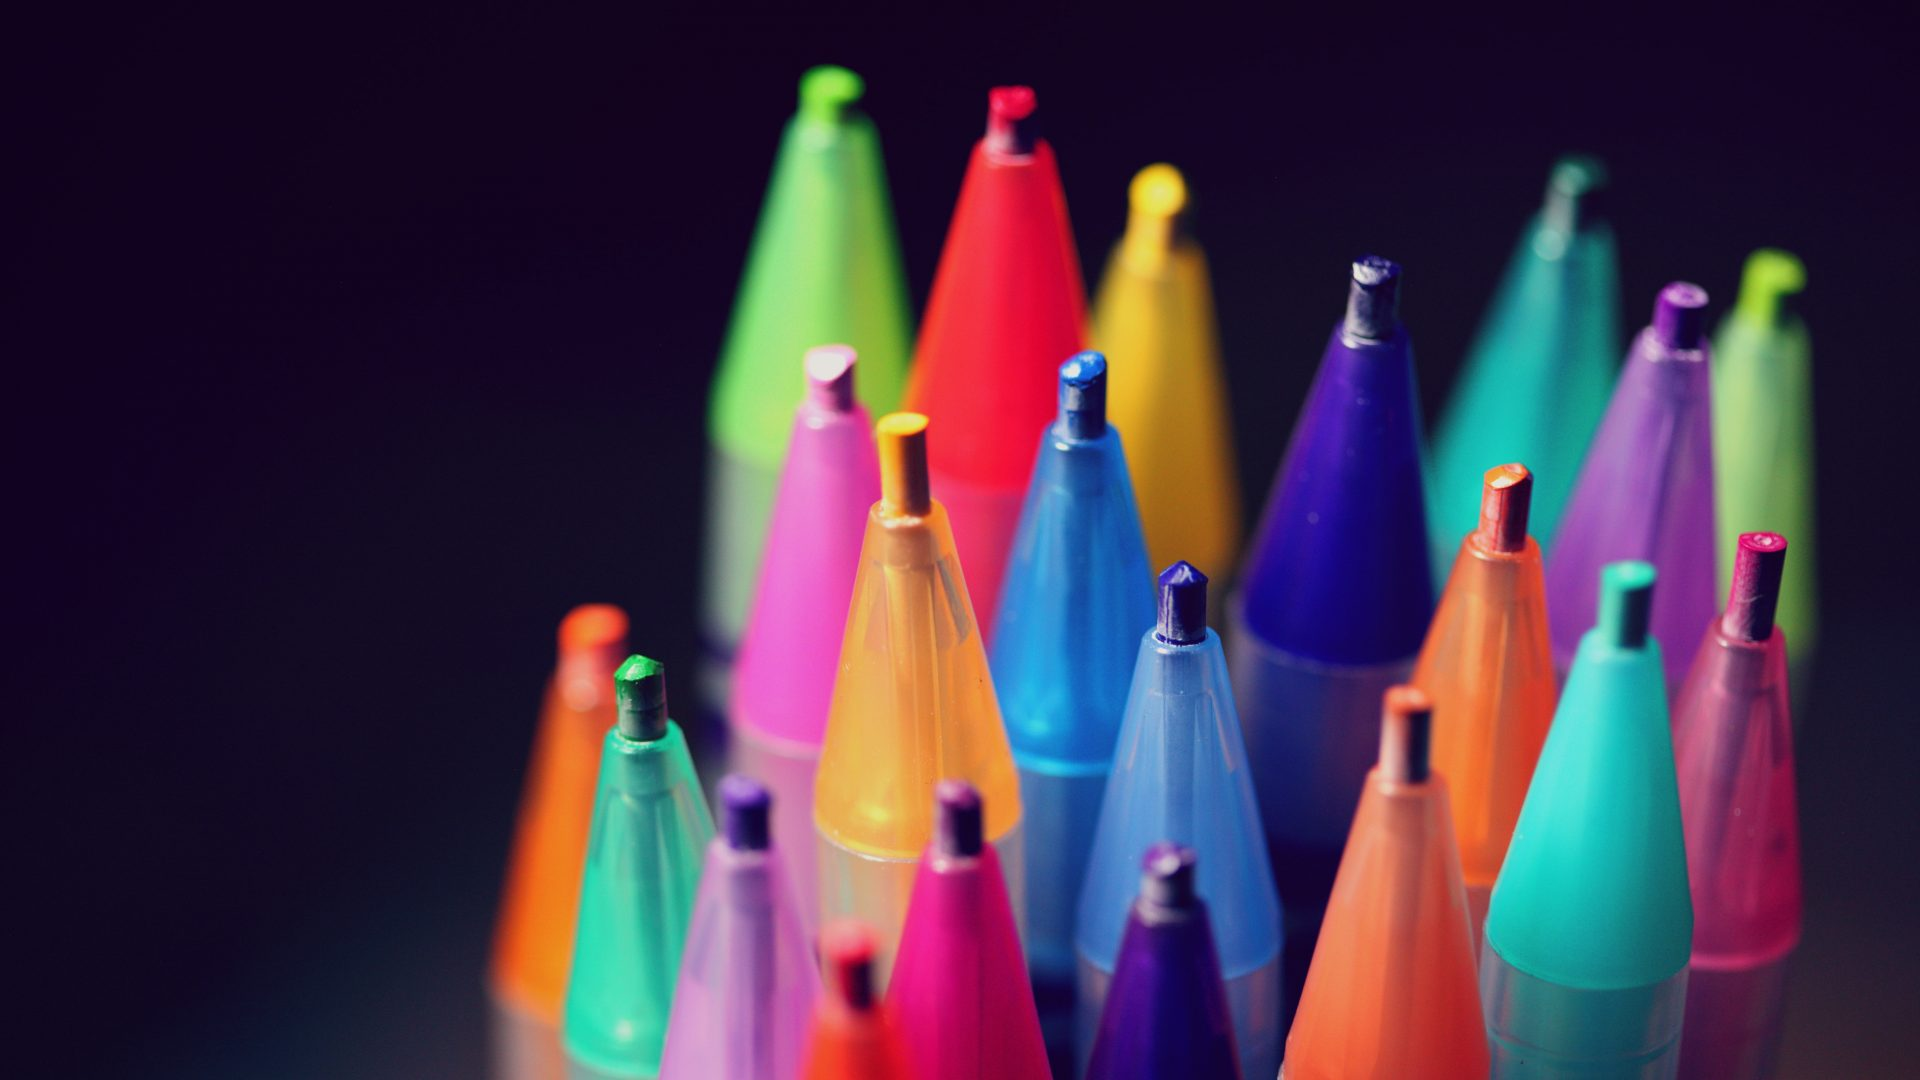 A diverse collection of colourful pencils.